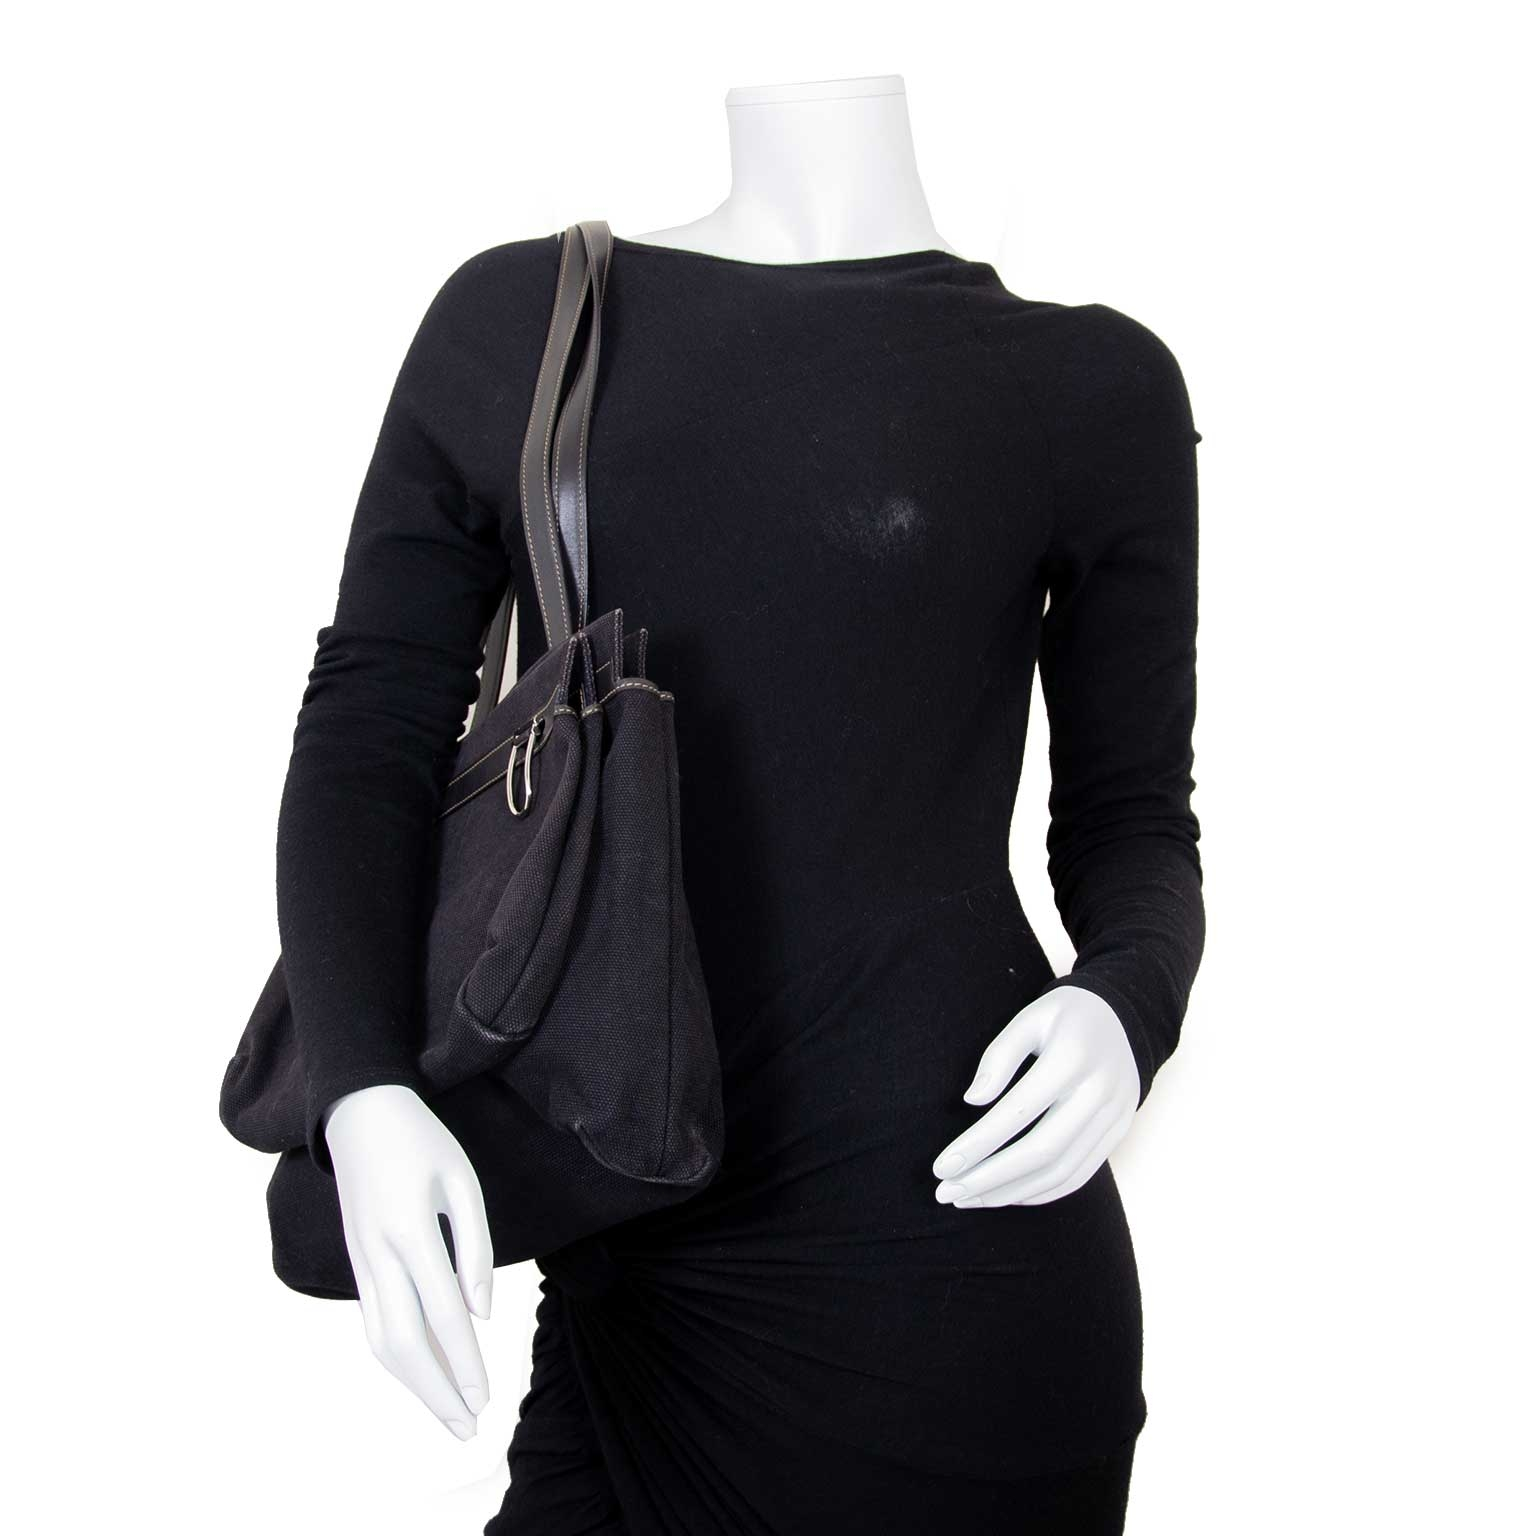 delvaux black fabric d light bag now for sale at labellov vintage fashion webshop belgium